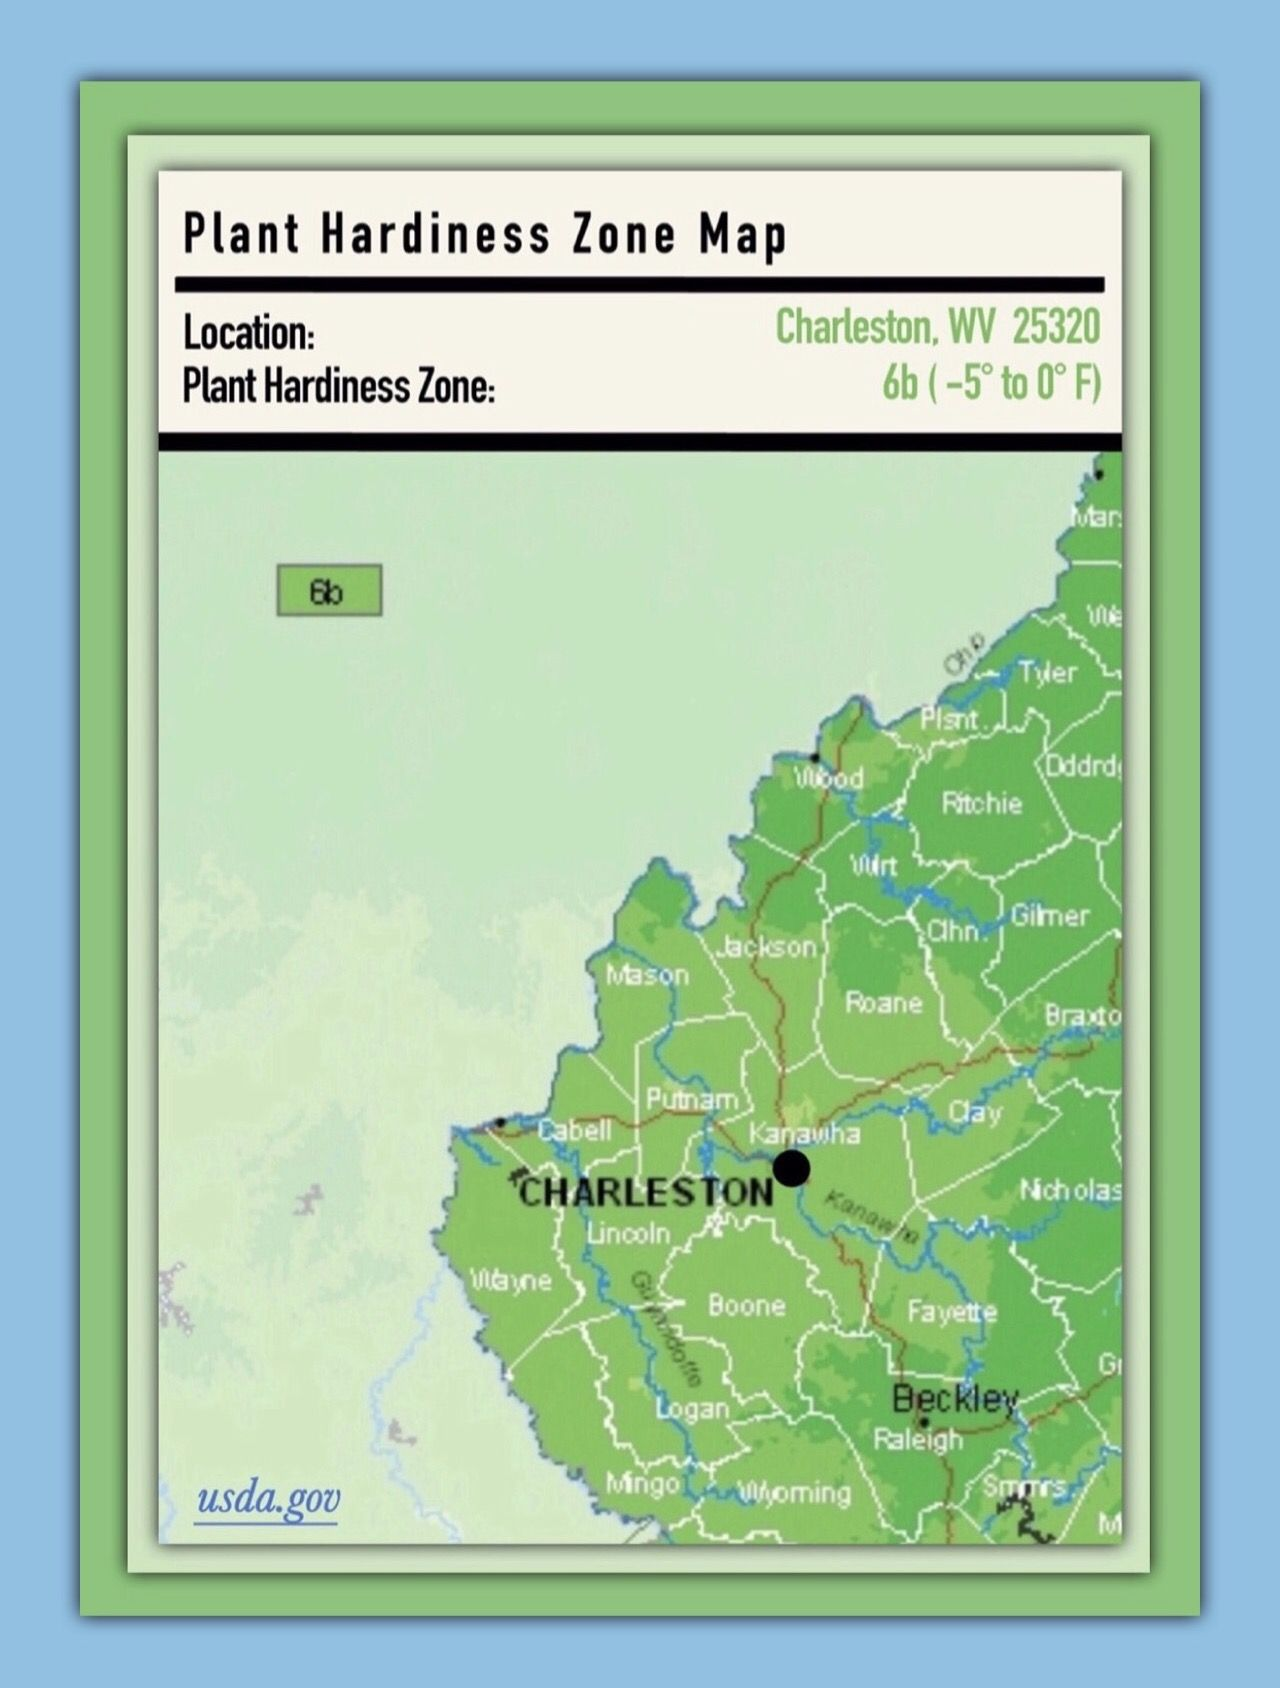 Plant Hardiness Zone Map: Charleston, WV 25320 | USDA, www.usda.gov on map of tennessee, map of elkins west virginia, map of west virginia only, map of nc, map of west virginia and virginia together, map of va, map of md, map of virginia with cities, map of tx, map of wy, map of pennsylvania, map of wi, map of west virginia mountains, map of ohio, map projection, map of wvu, map of west virginia cities, map of ct, map of raleigh county west virginia, map of ky,